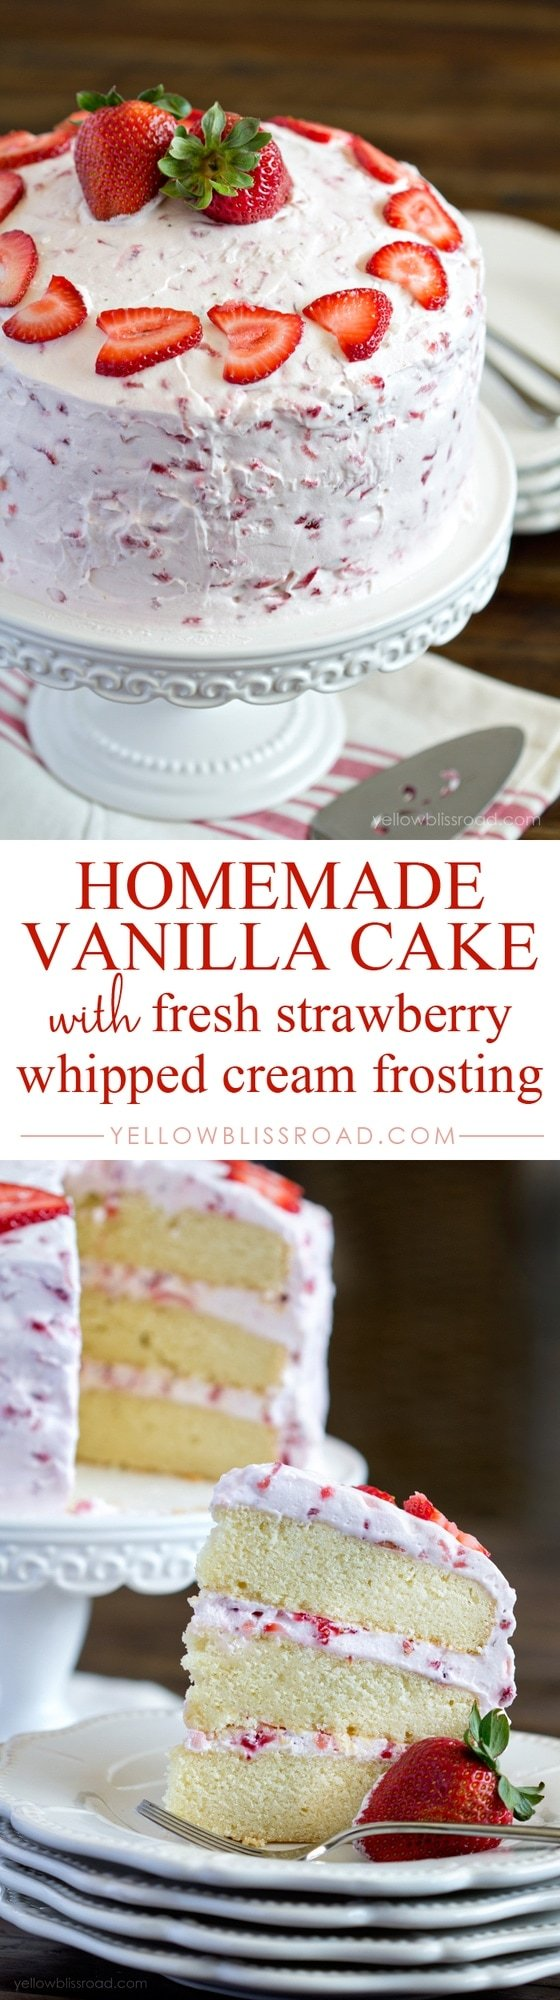 Homemade Strawberry Cake with Fresh Strawberry Whipped Cream Frosting